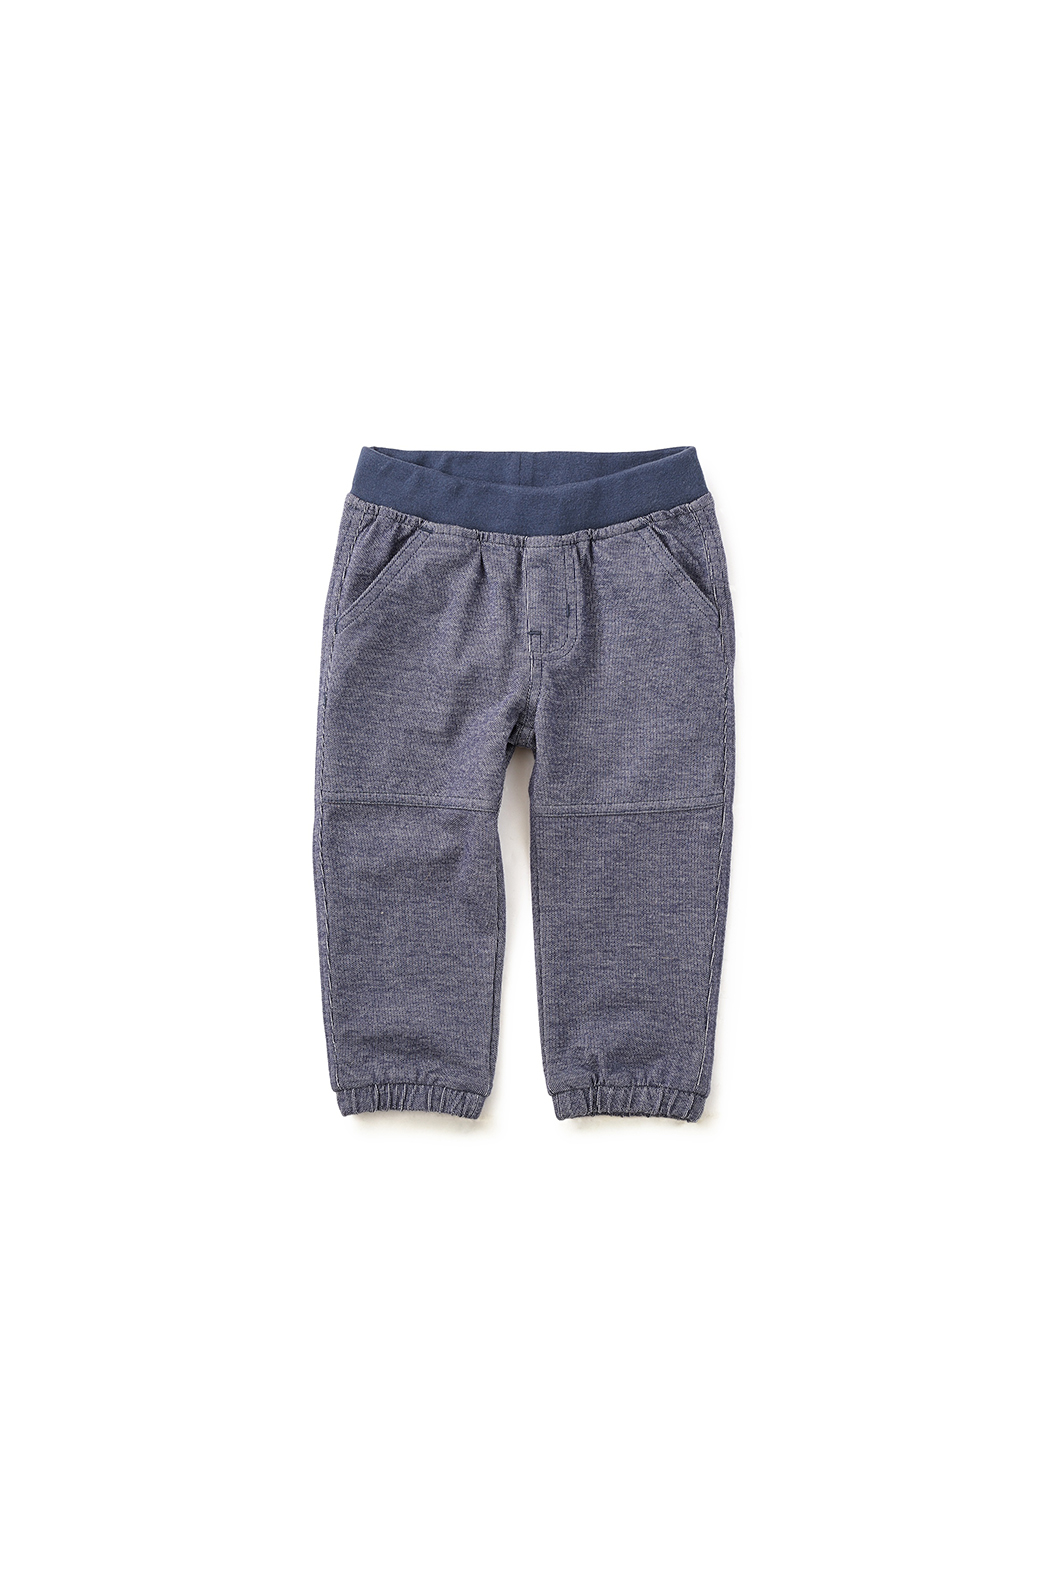 Tea Collection Denim Like Baby Pants - Front Cropped Image